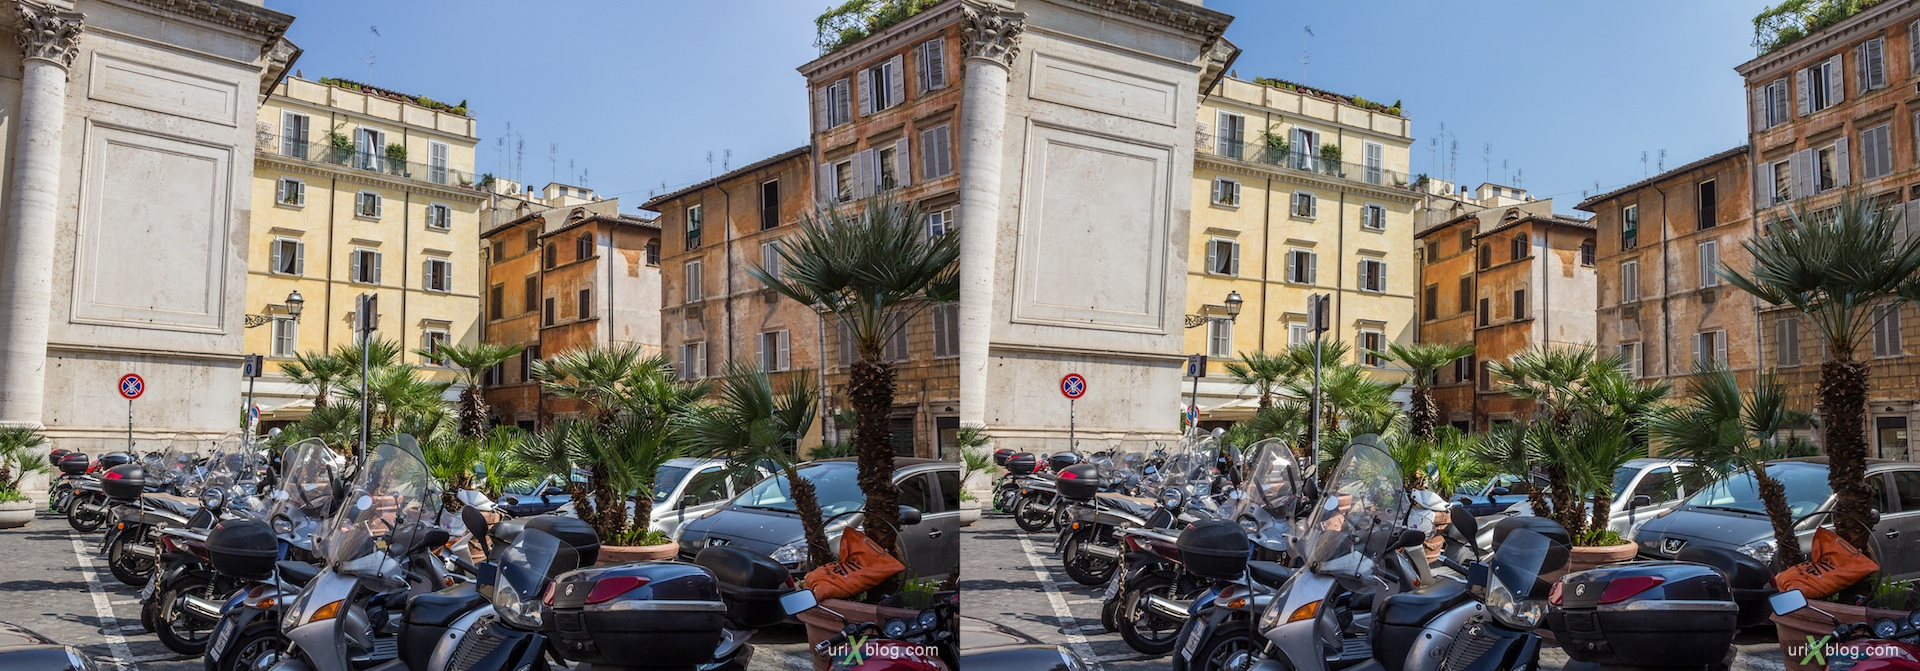 2012, Piazza di San Salvatore in Lauro square, 3D, stereo pair, cross-eyed, crossview, cross view stereo pair